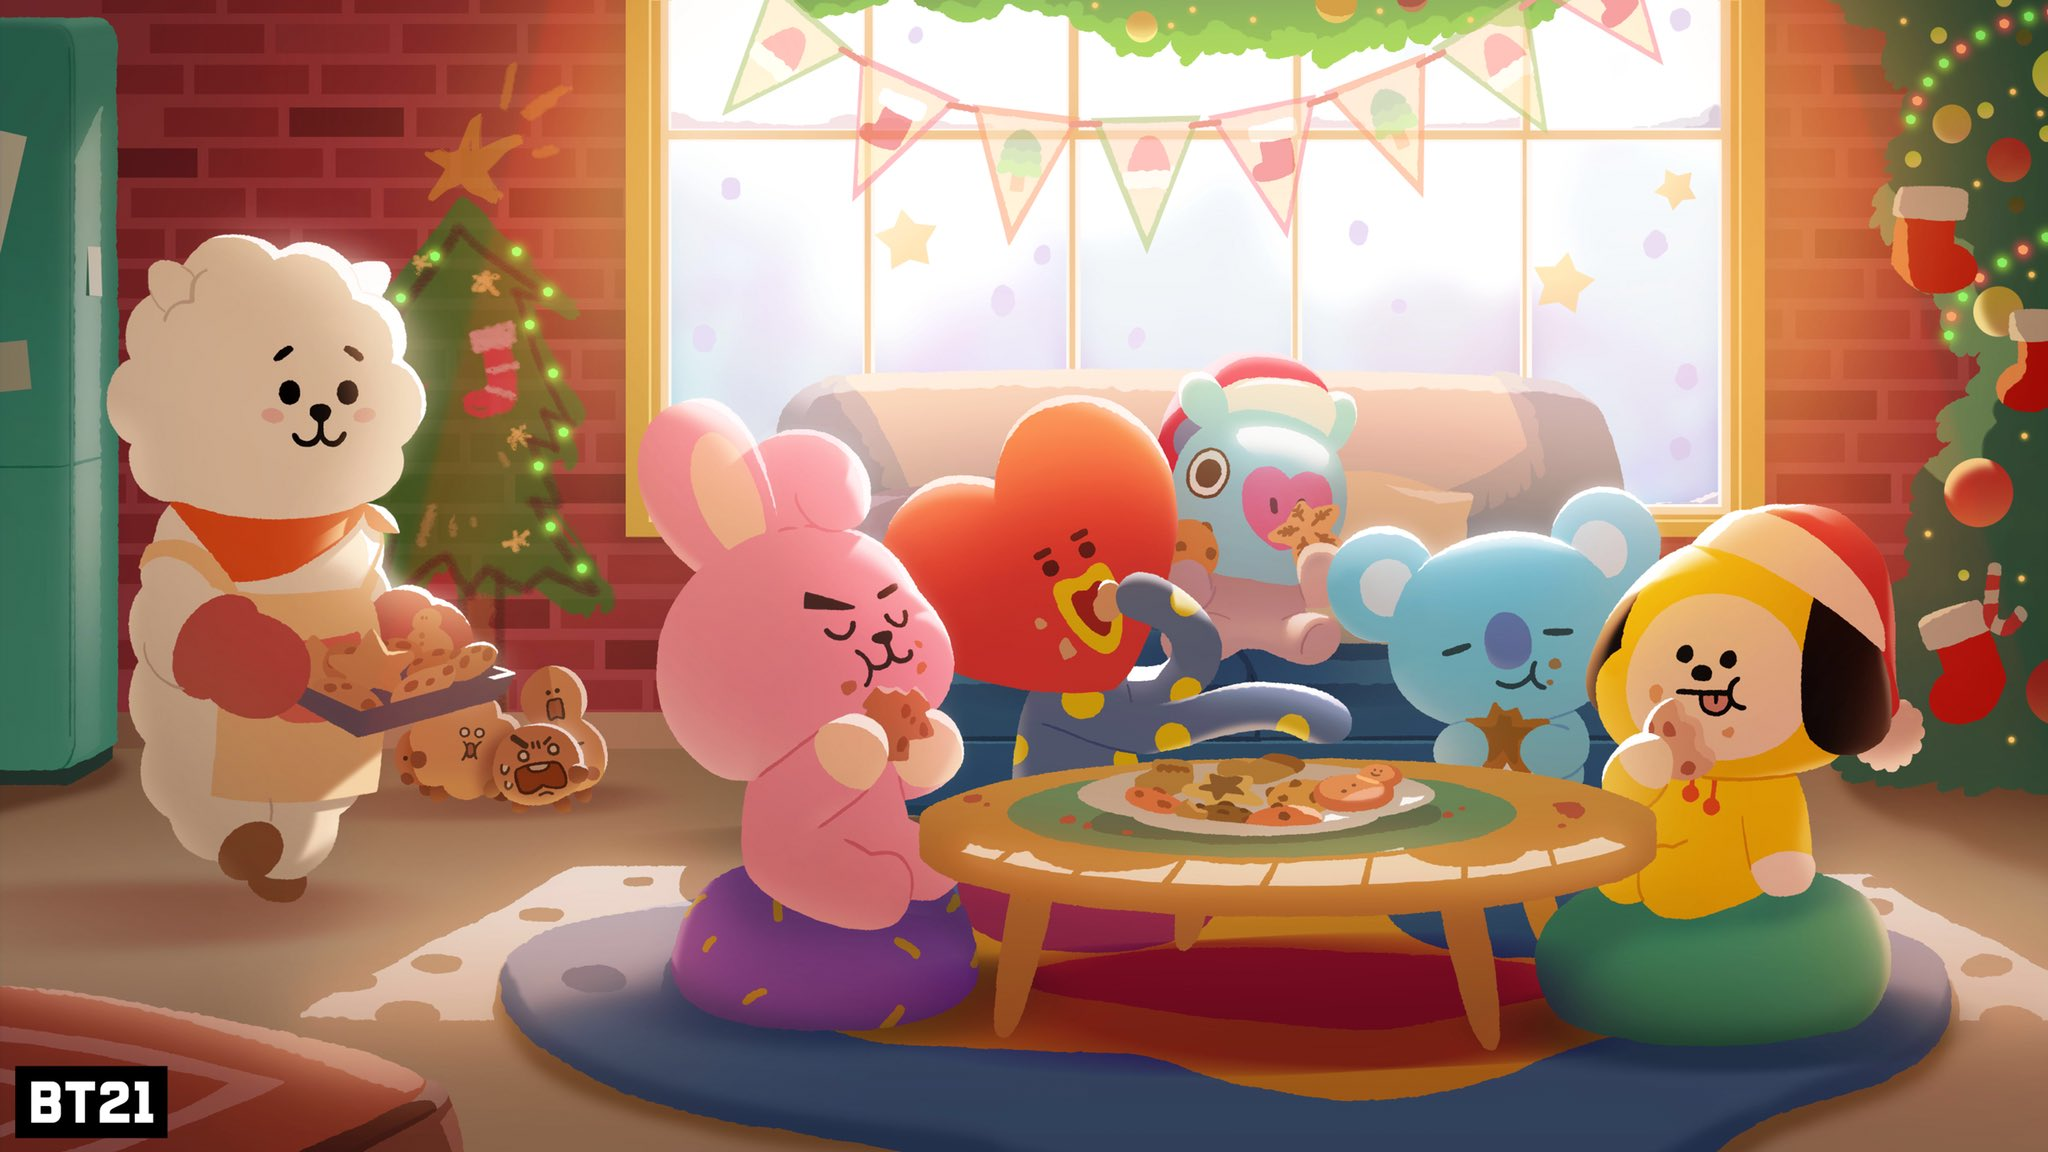 Large Hd Wallpapers For Laptop Bt21 On Twitter Quot It S Cookie Time🍪 Not Shooky Time